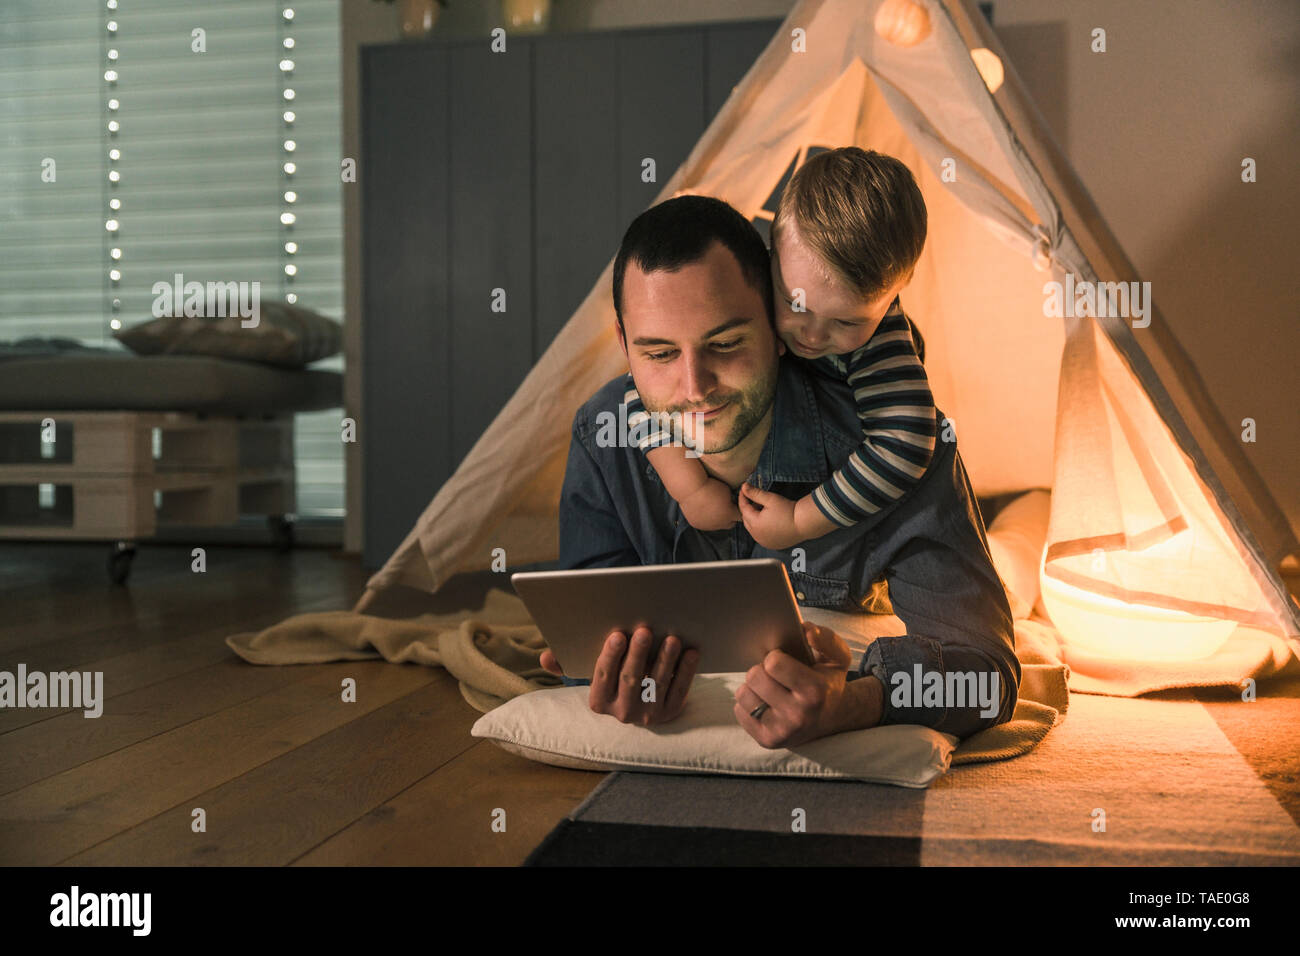 Father and son sharing a tablet at an illuminated tent at home - Stock Image